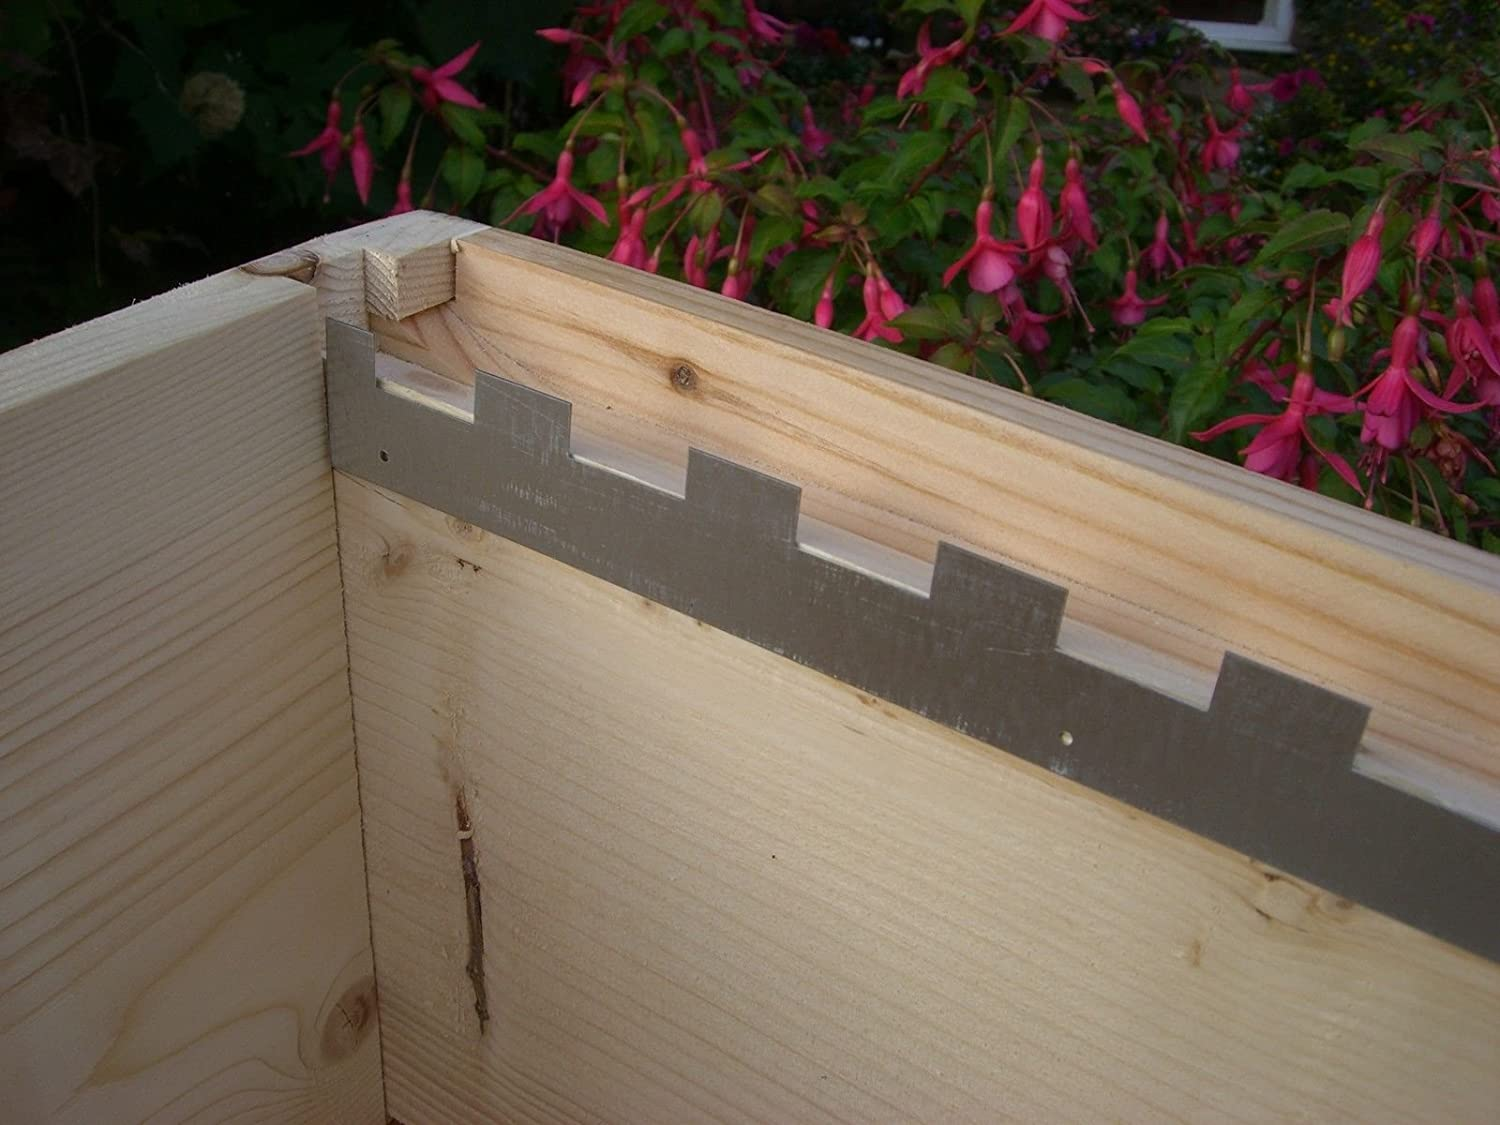 4 Castellated frame spacers (2 pairs) holding 10 frames Simonthebeekeeper